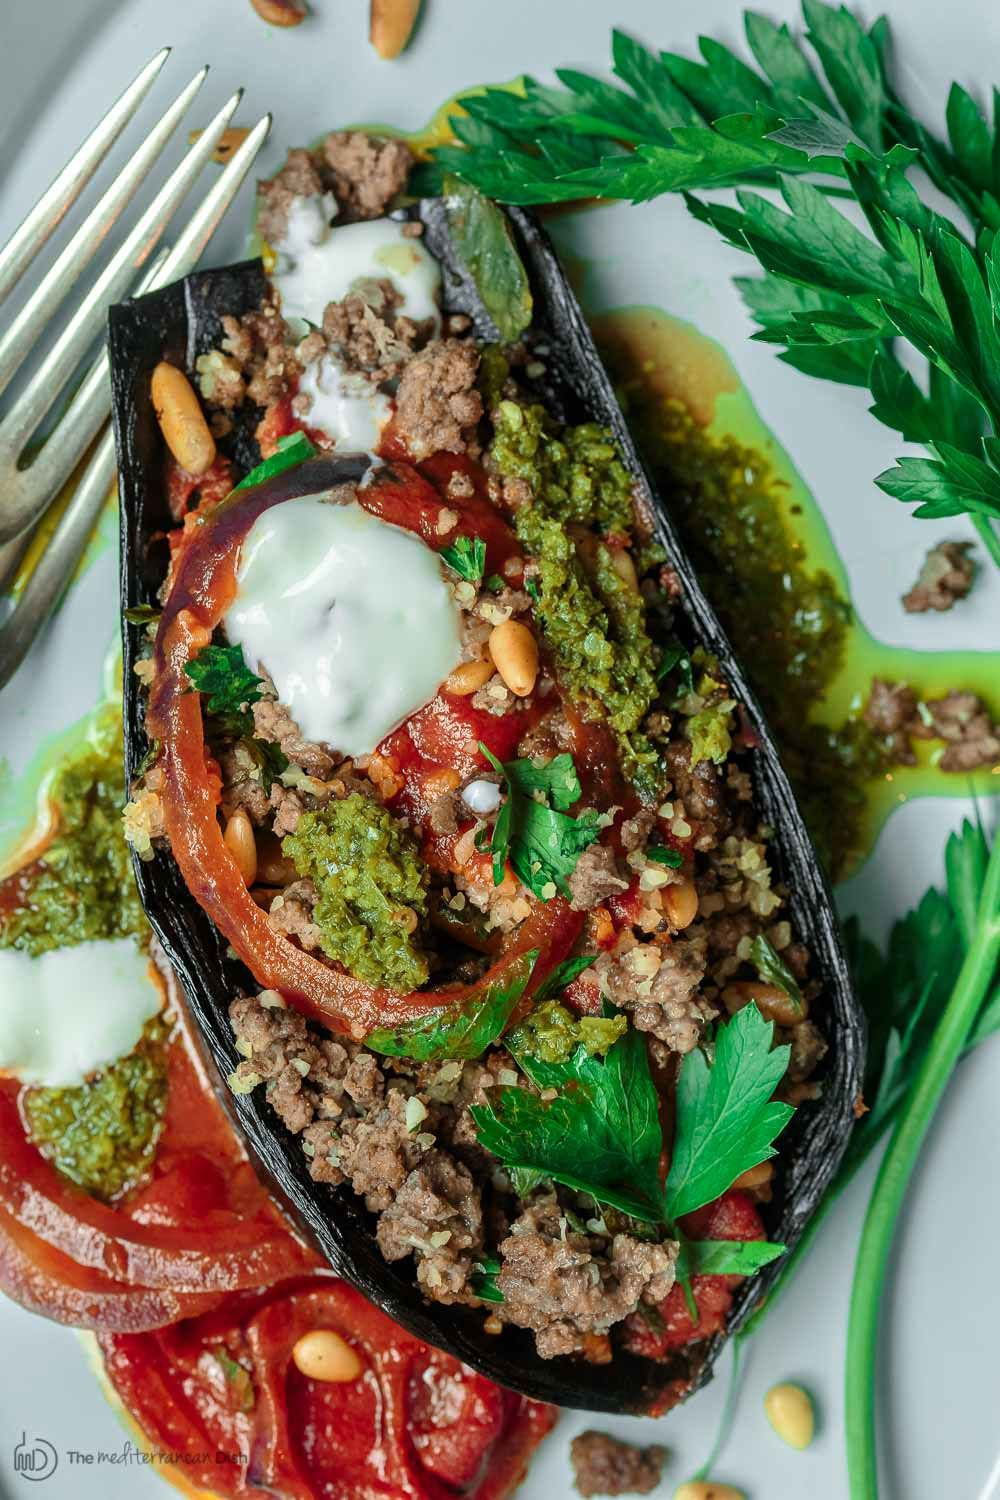 Mediterranean Stuffed Eggplant Recipe The Mediterranean Dish This Is A Must Try All Eggplant Recipes Roasted Eggplant Recipes Mediterranean Eggplant Recipe